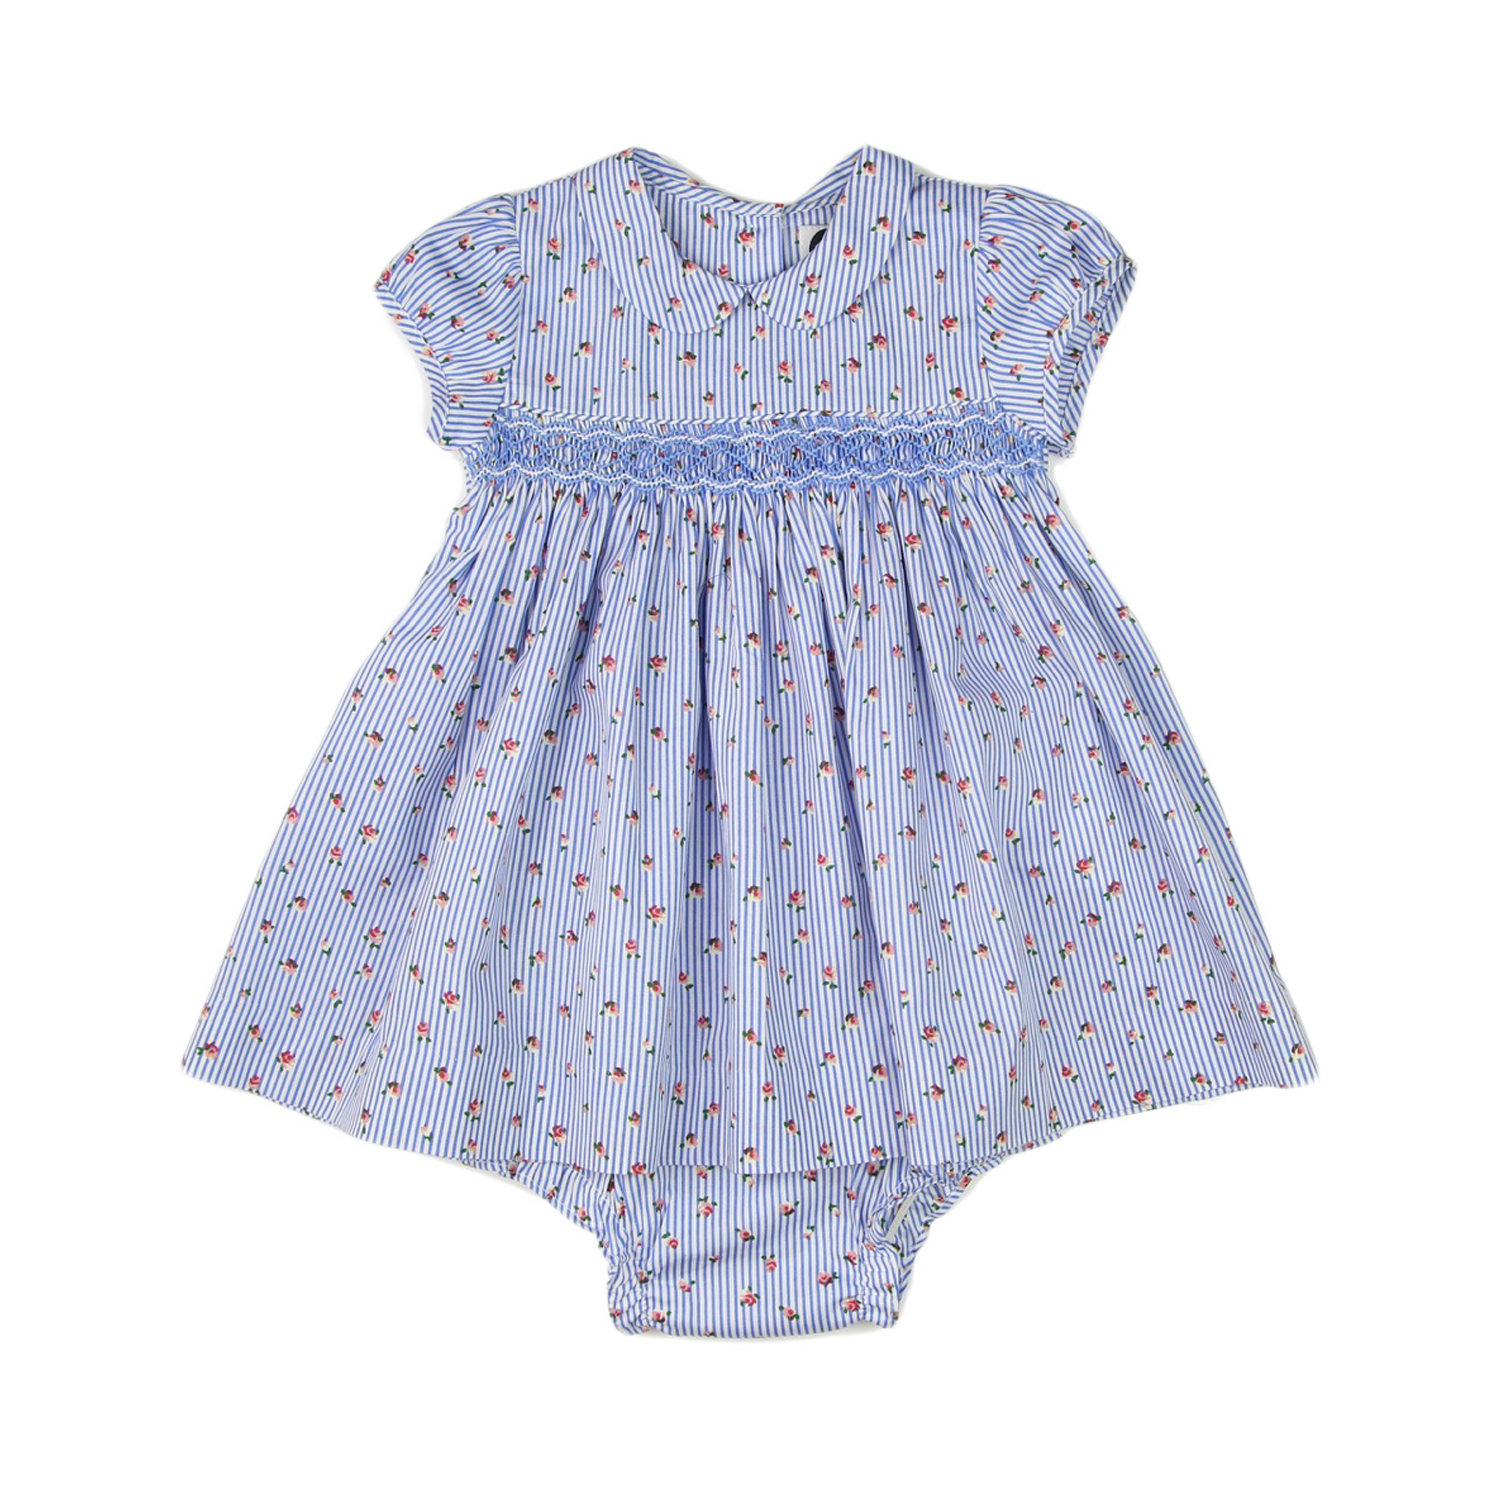 Baby dress png. Isla girls question everything